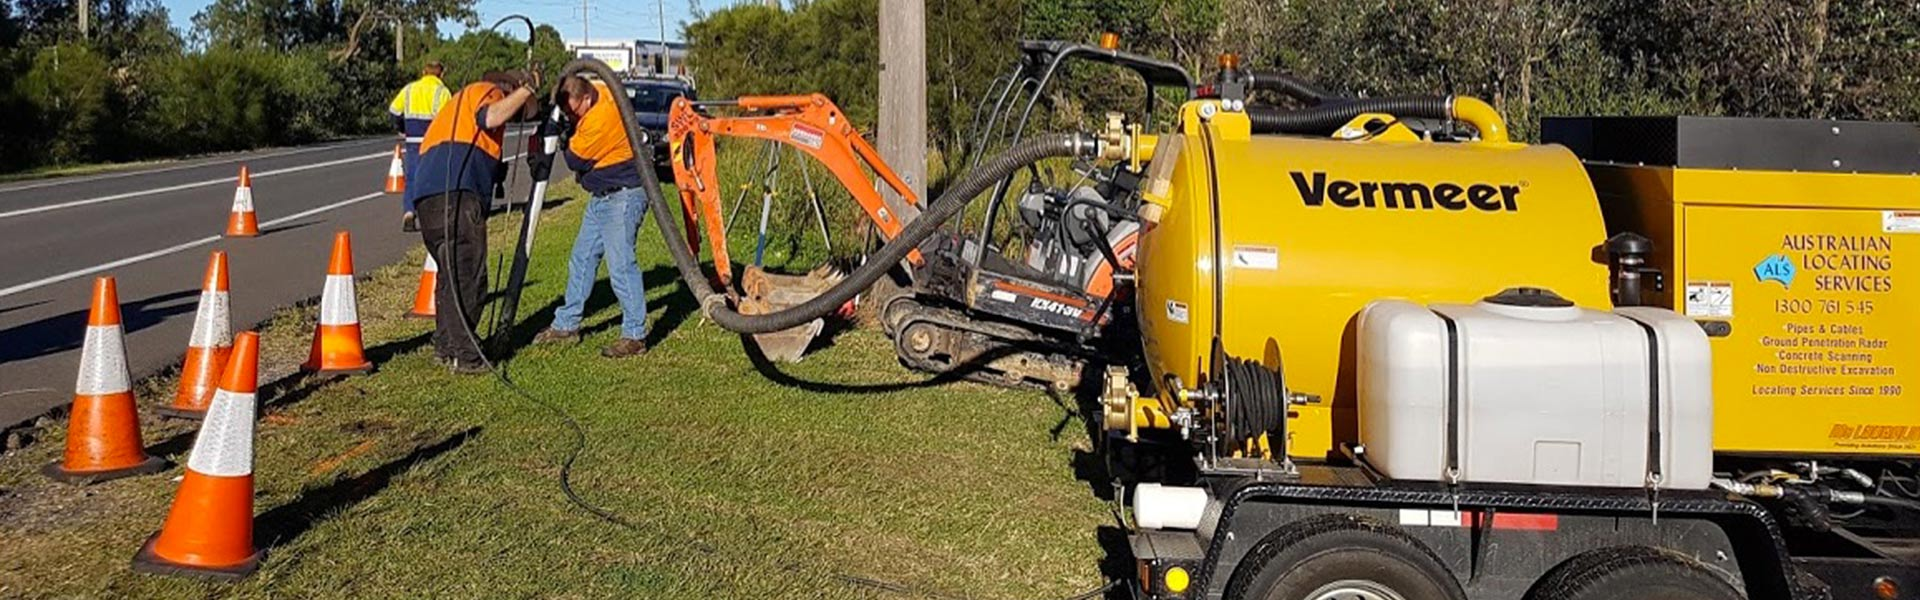 australian locating services potholing or non destructive digging